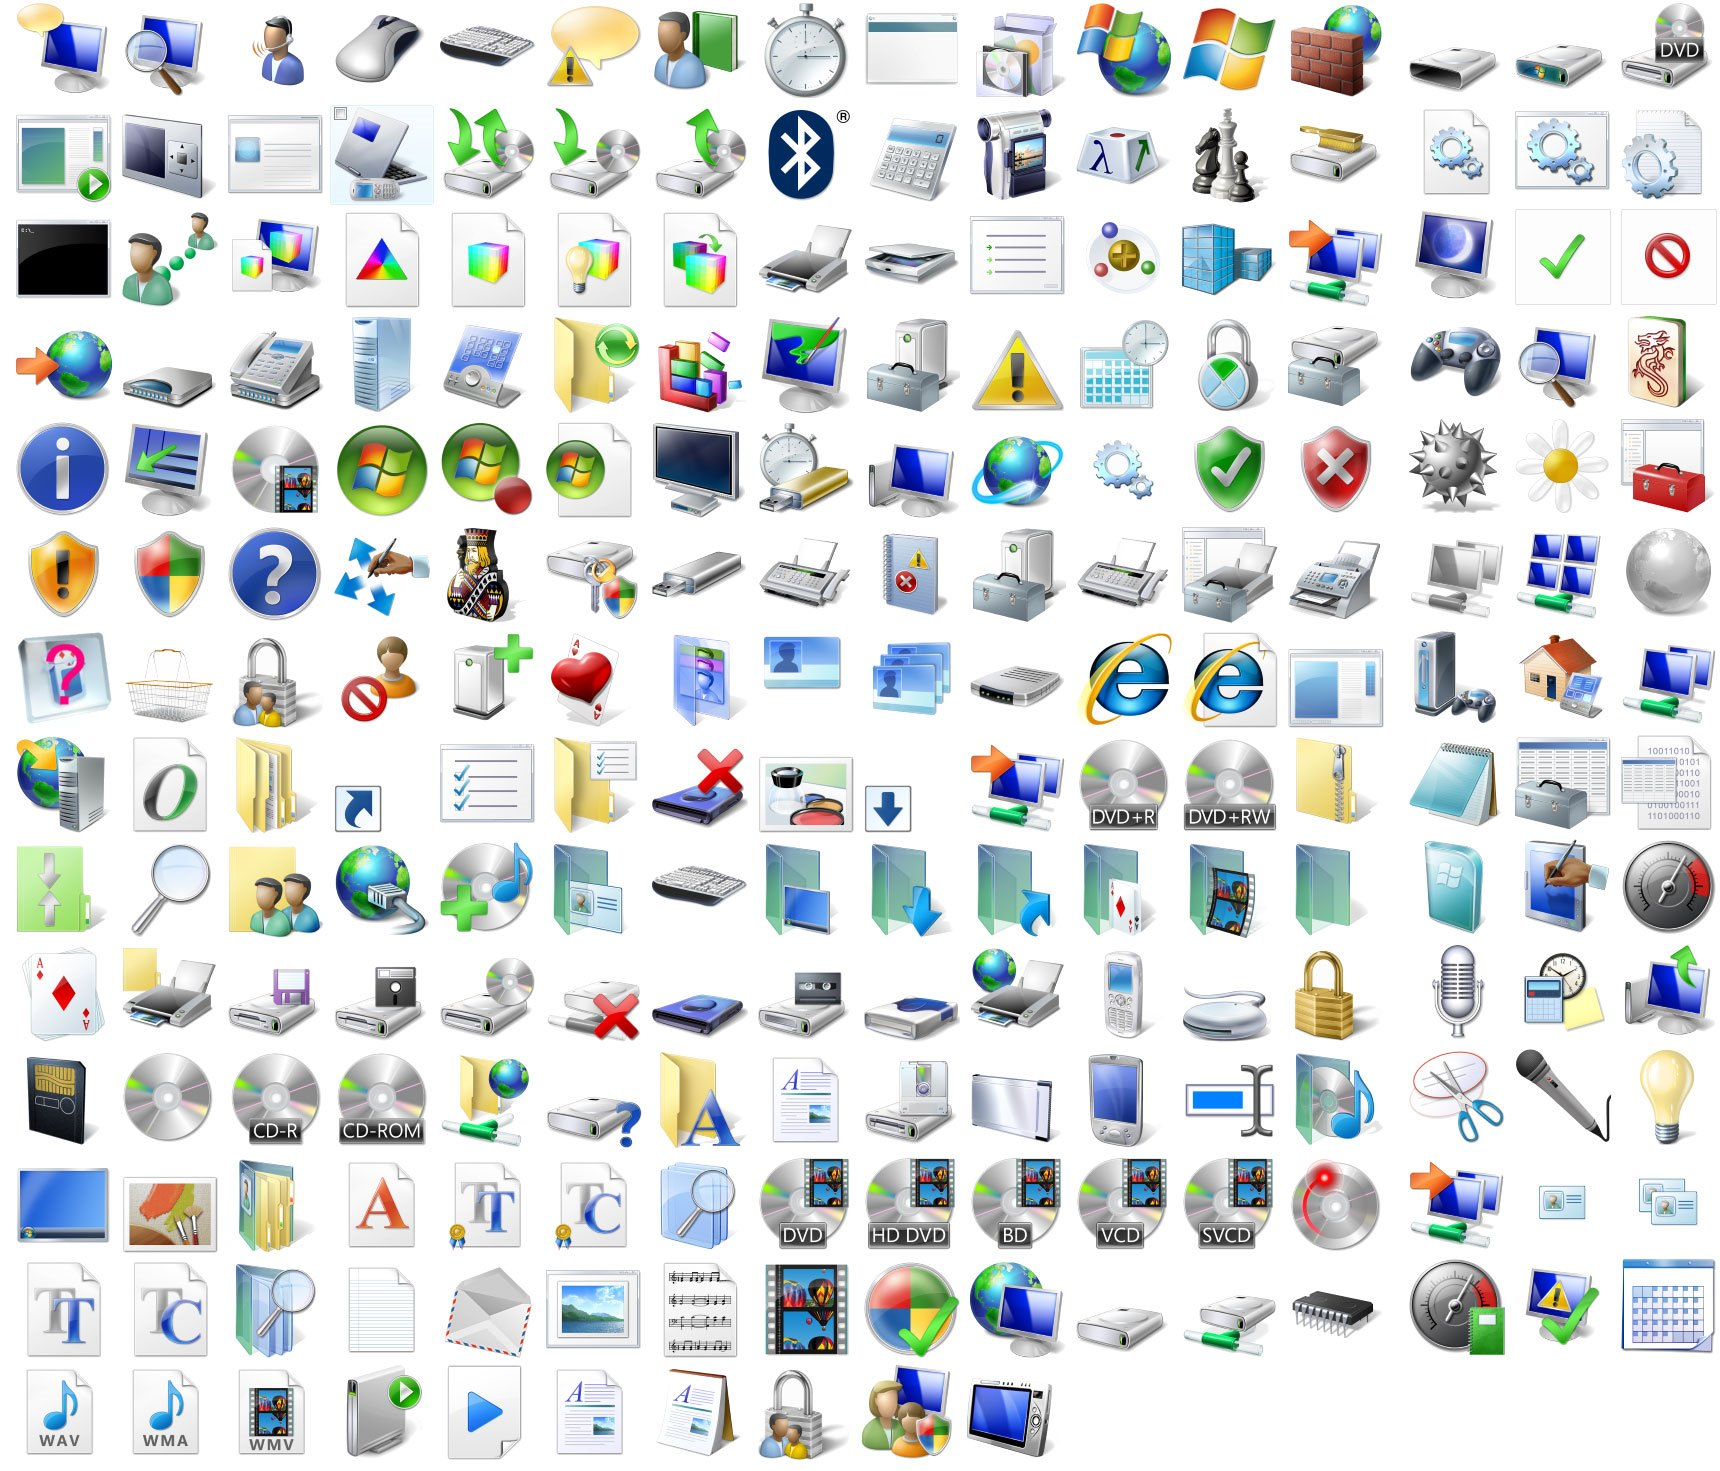 10 system32 icon files images file extension icon